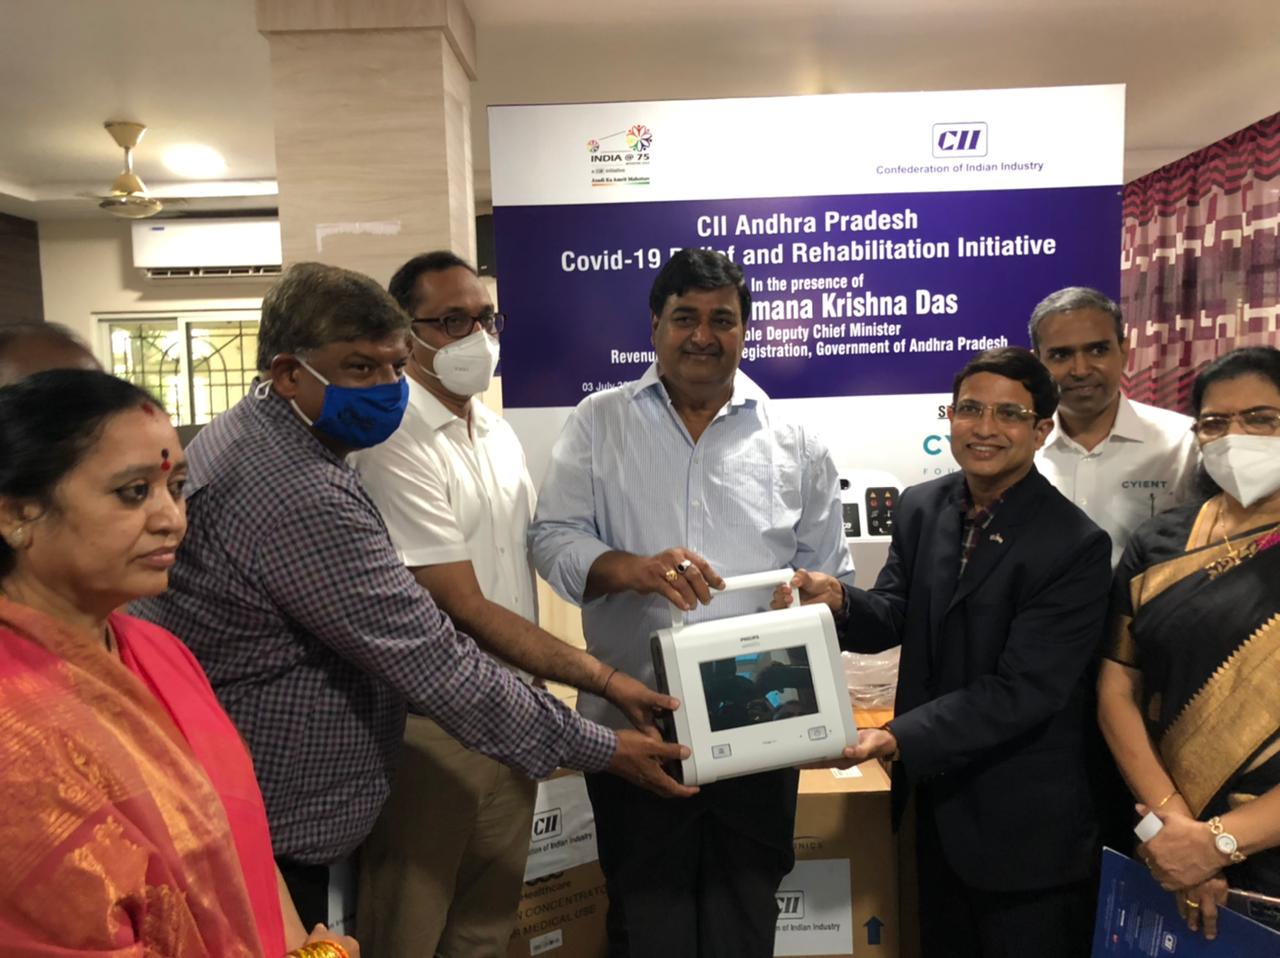 Westinghouse Electric Company Donates Medical Equipment Worth INR 63 Lakhs to Government General Hospital, Srikakulam, Andhra Pradesh, Supported by CII and Cyient Foundation